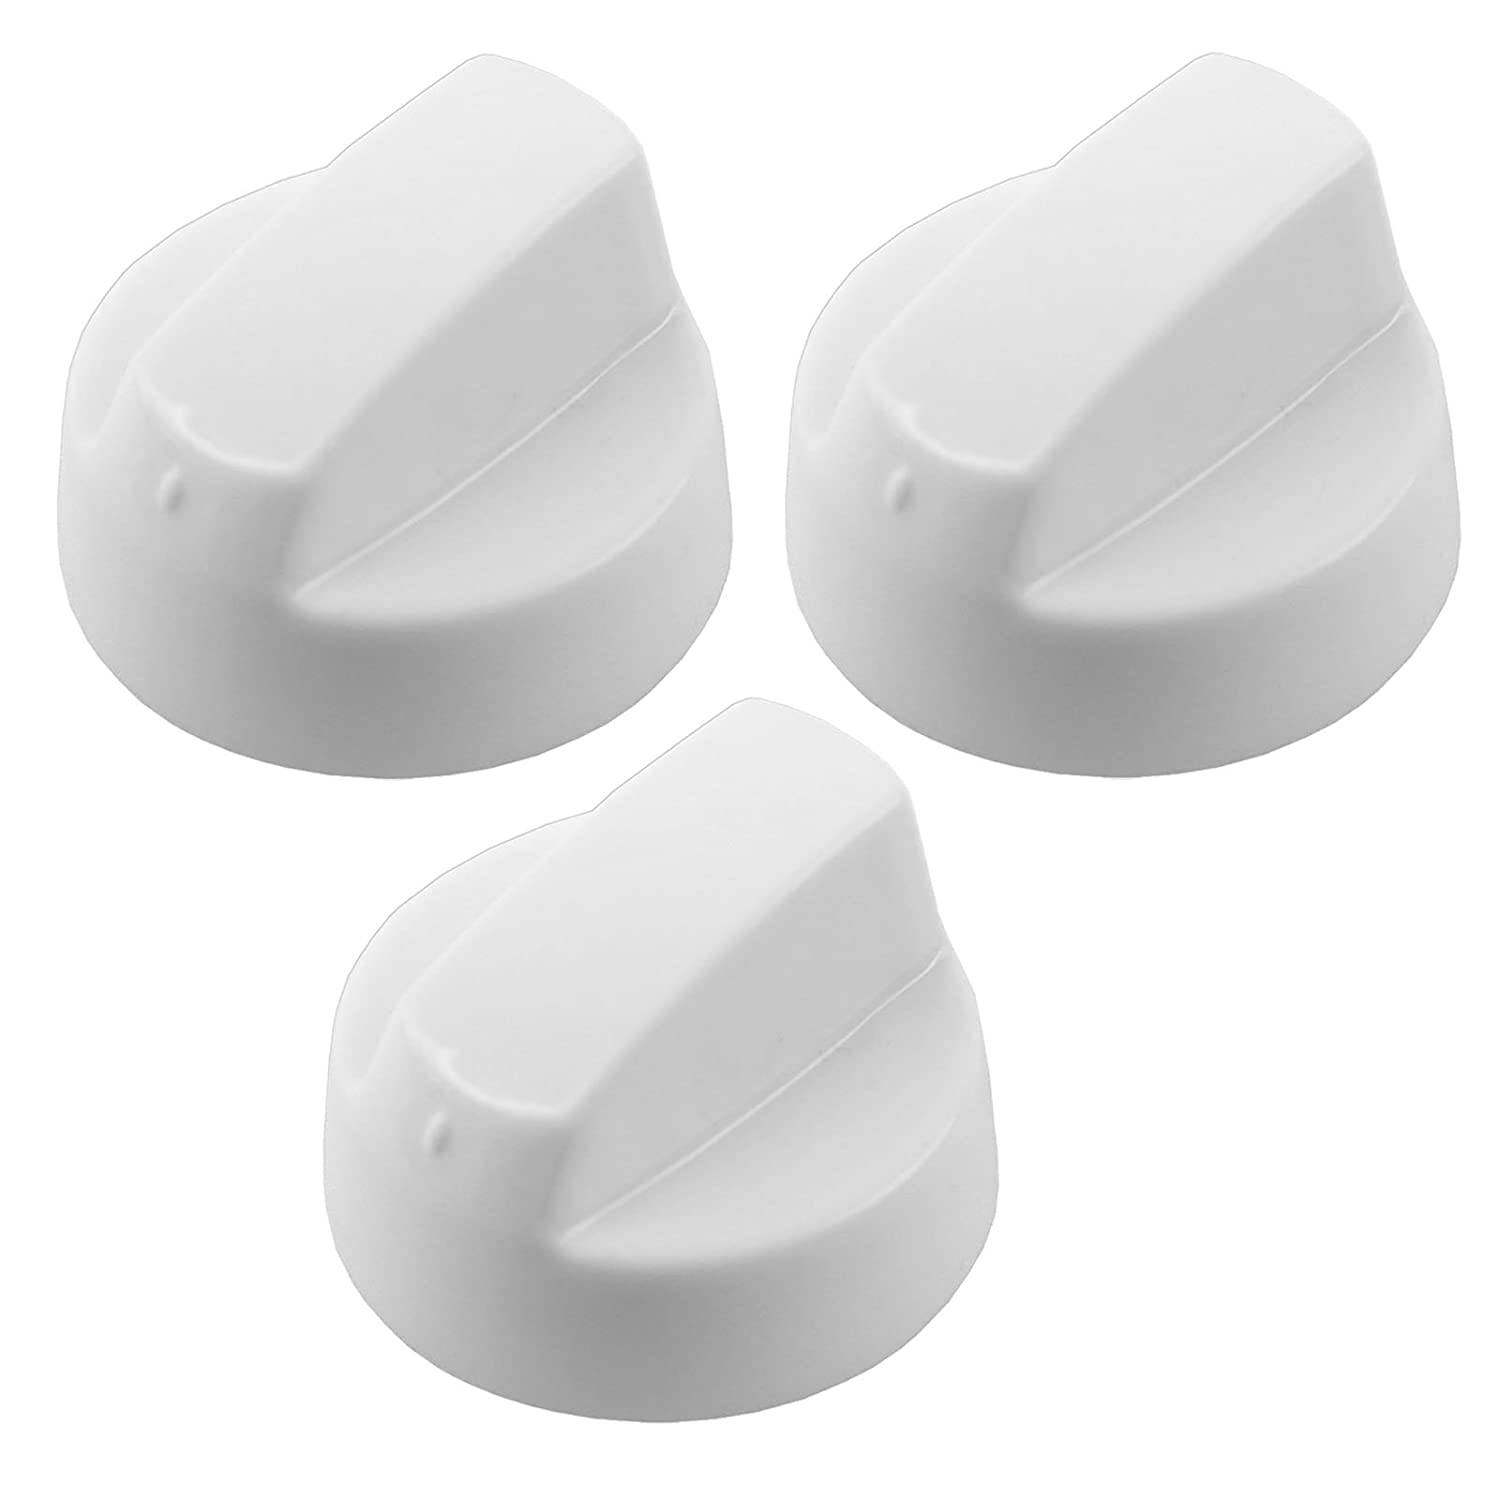 Spares2go Universal White Control Knobs For All Makes And Models Of Zanussi Oven Cooker & Hob (Pack Of 3 + 15 Adaptors)